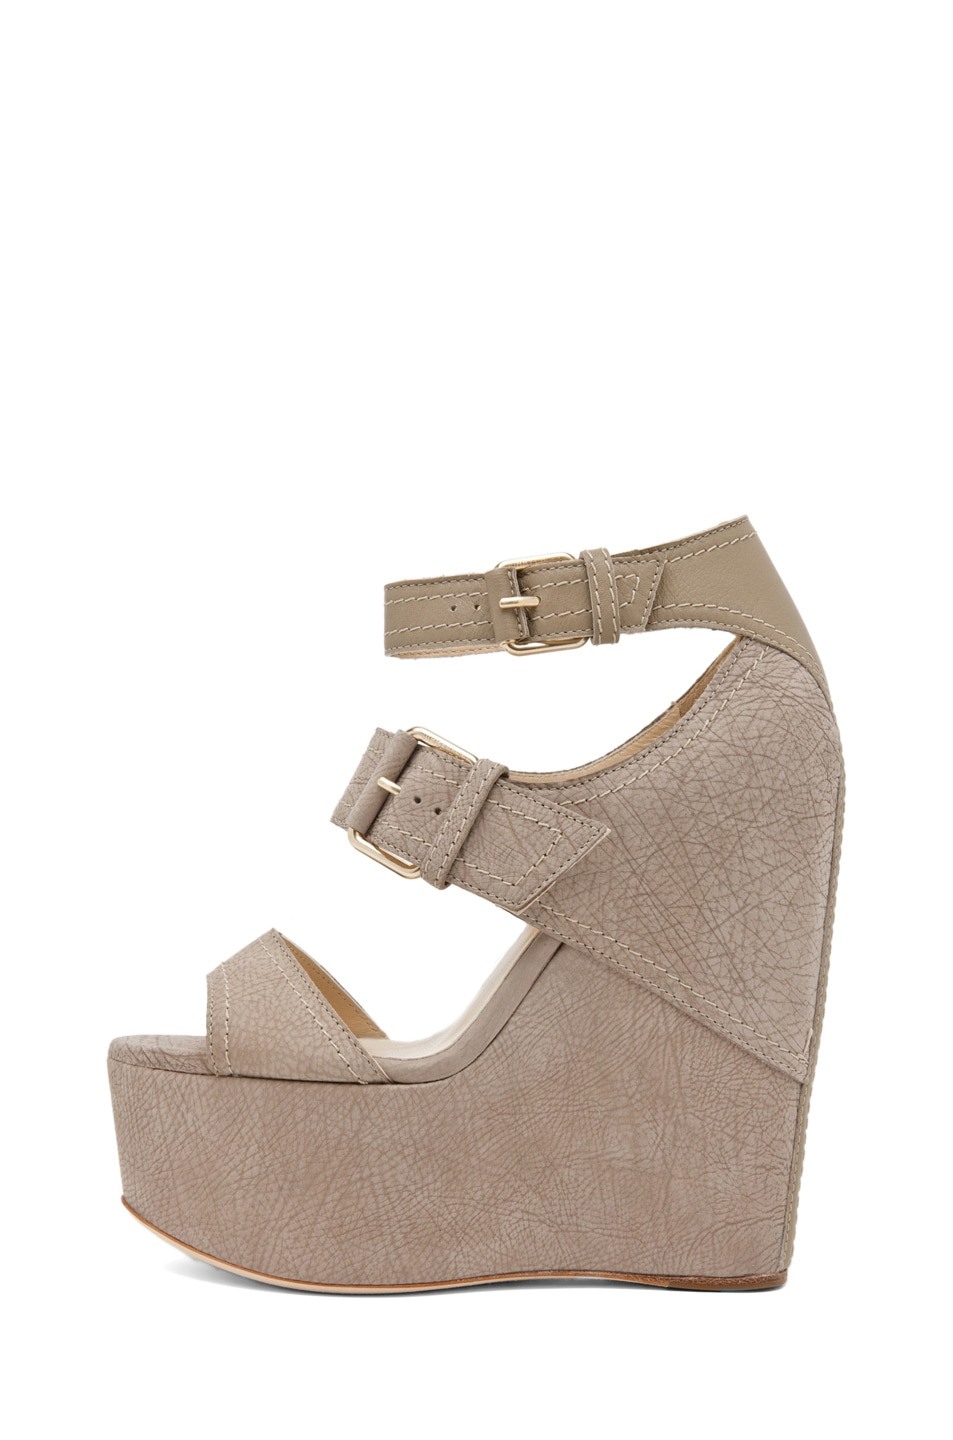 Image 1 of Jimmy Choo Leora Wedge Sandal in Light Khaki